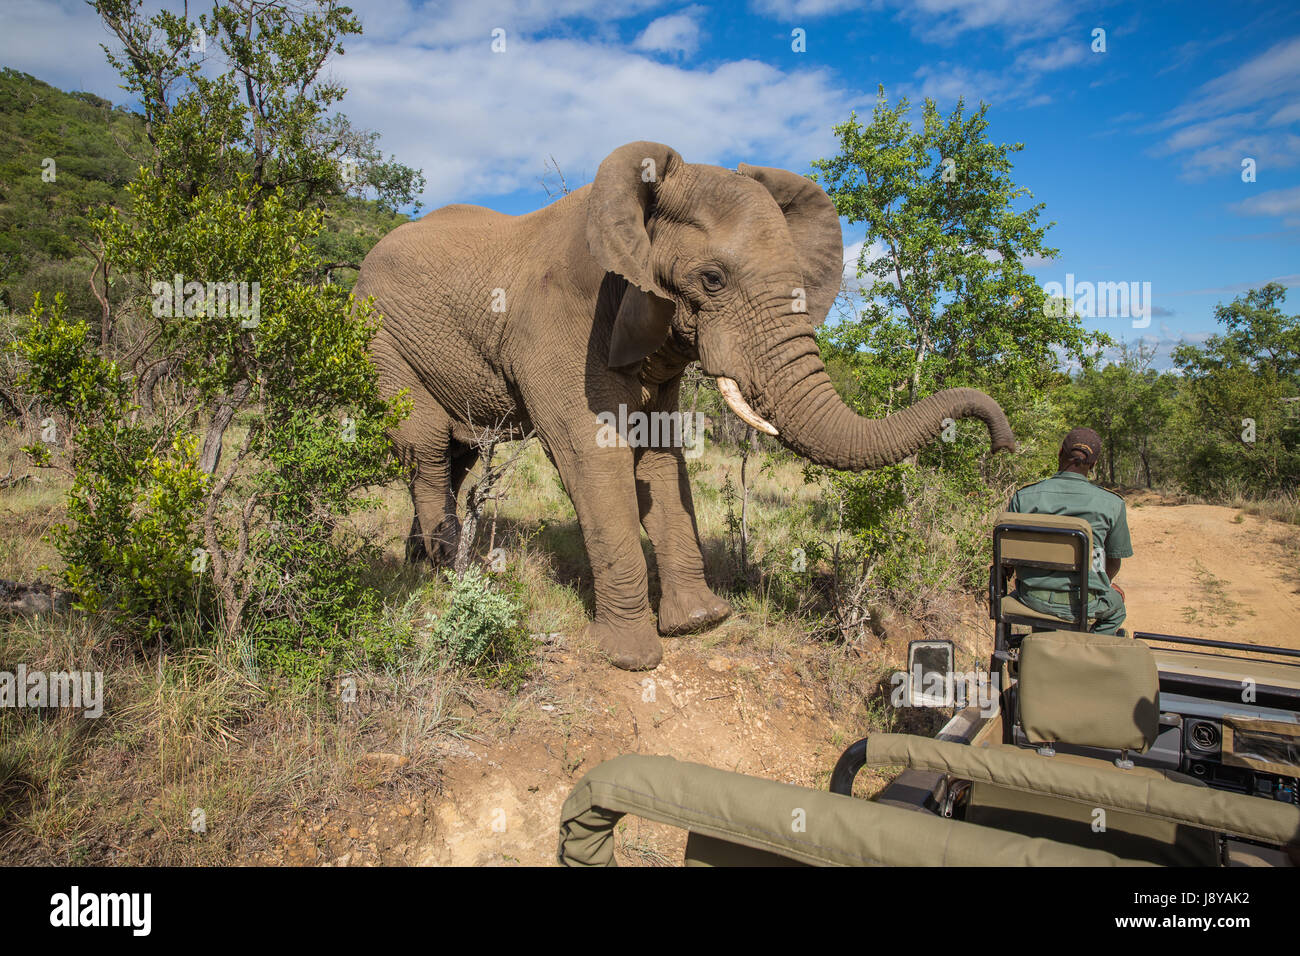 South Africa - January 15: Closely visit with a elephant during the safari at Mkuze Falls Game Reserve - Stock Image